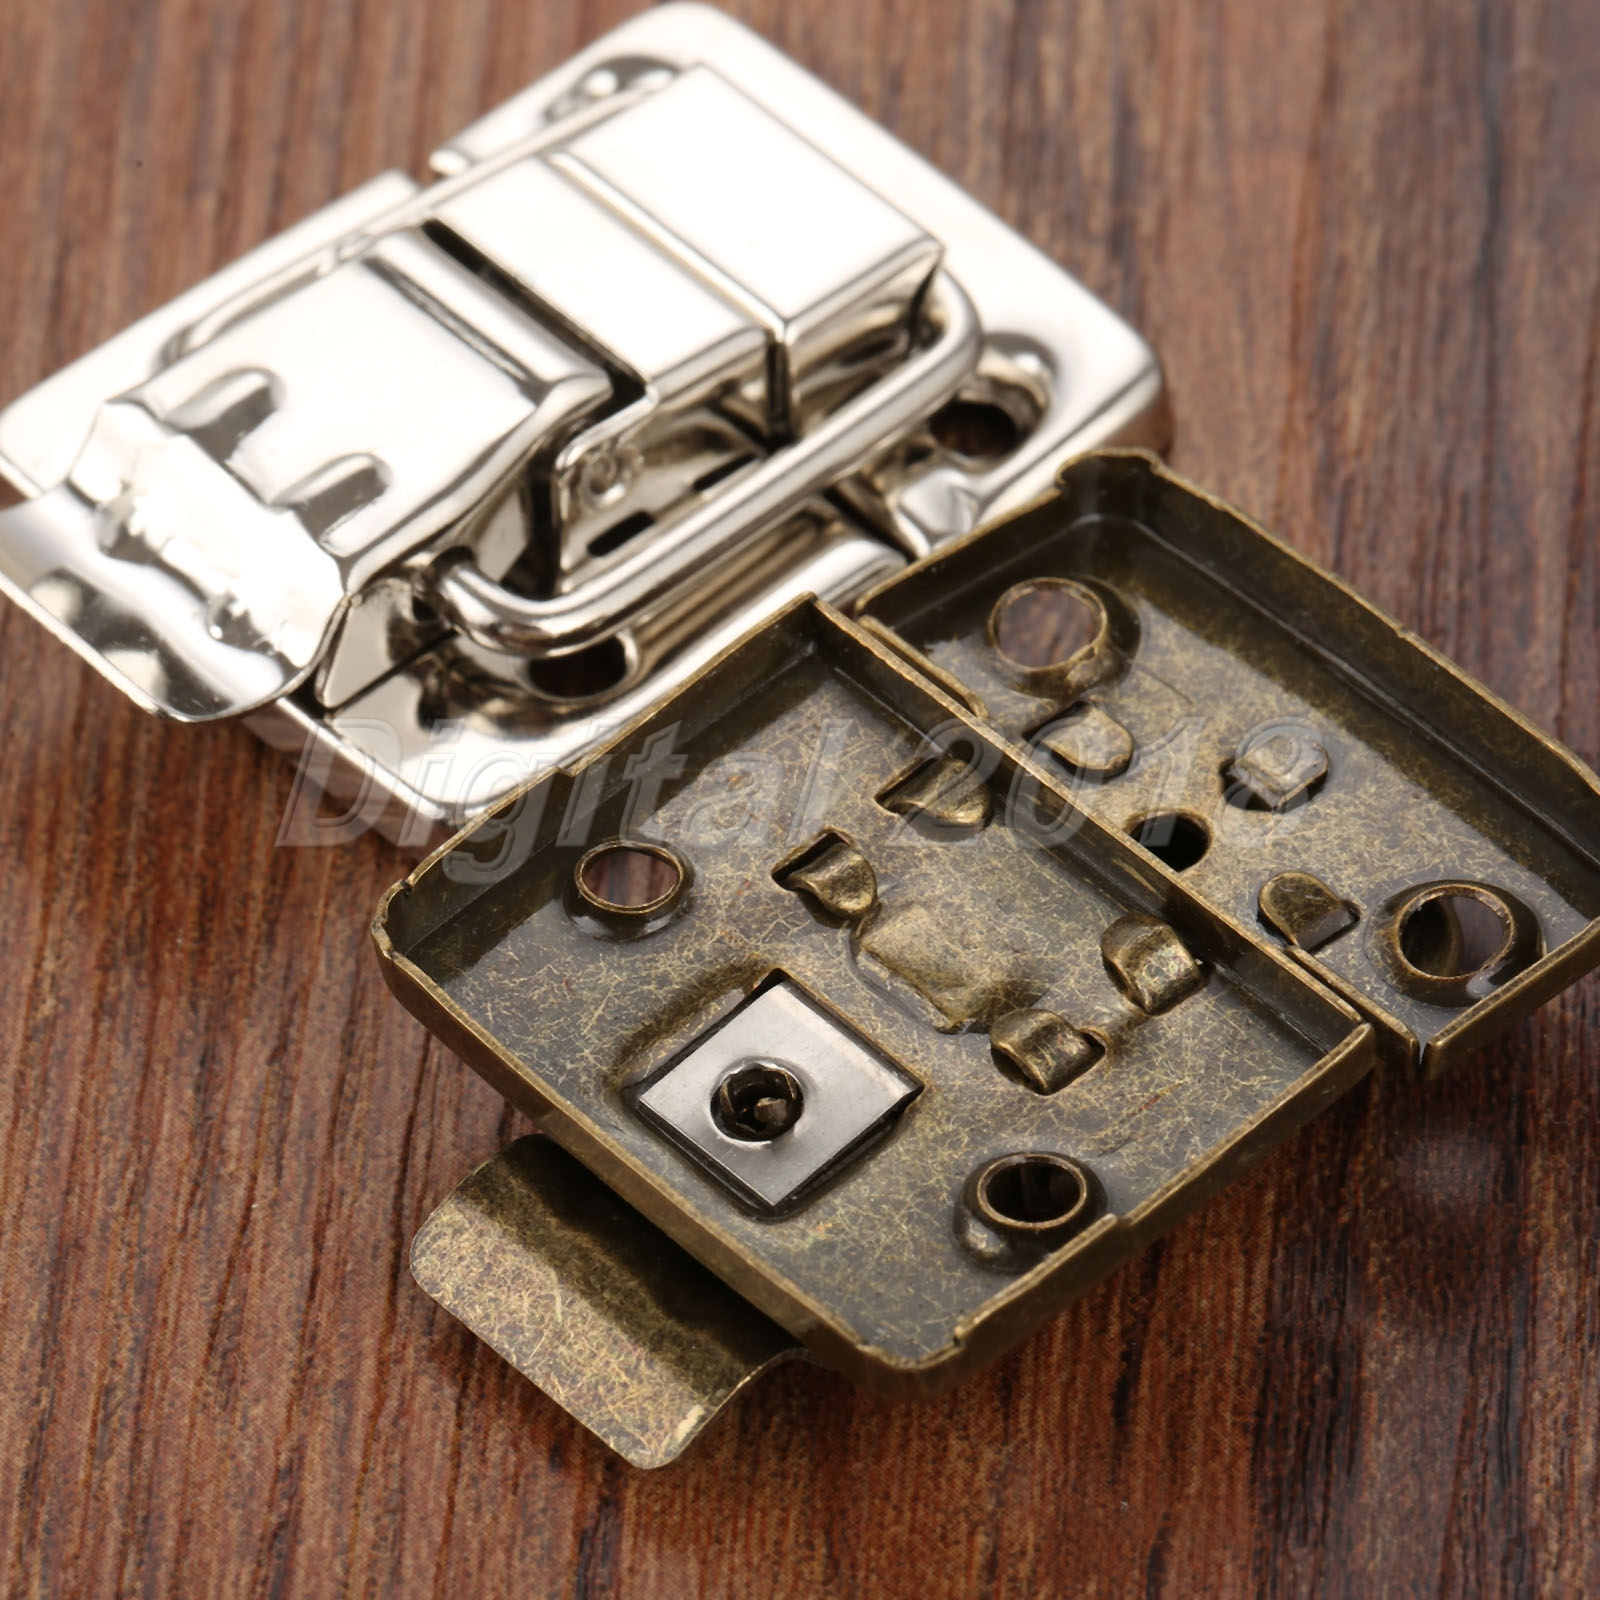 shadiao Toggle Catch Latch Case Trunk Chest Boxes Suitcase Safe Clip Clasp Trinket Tool